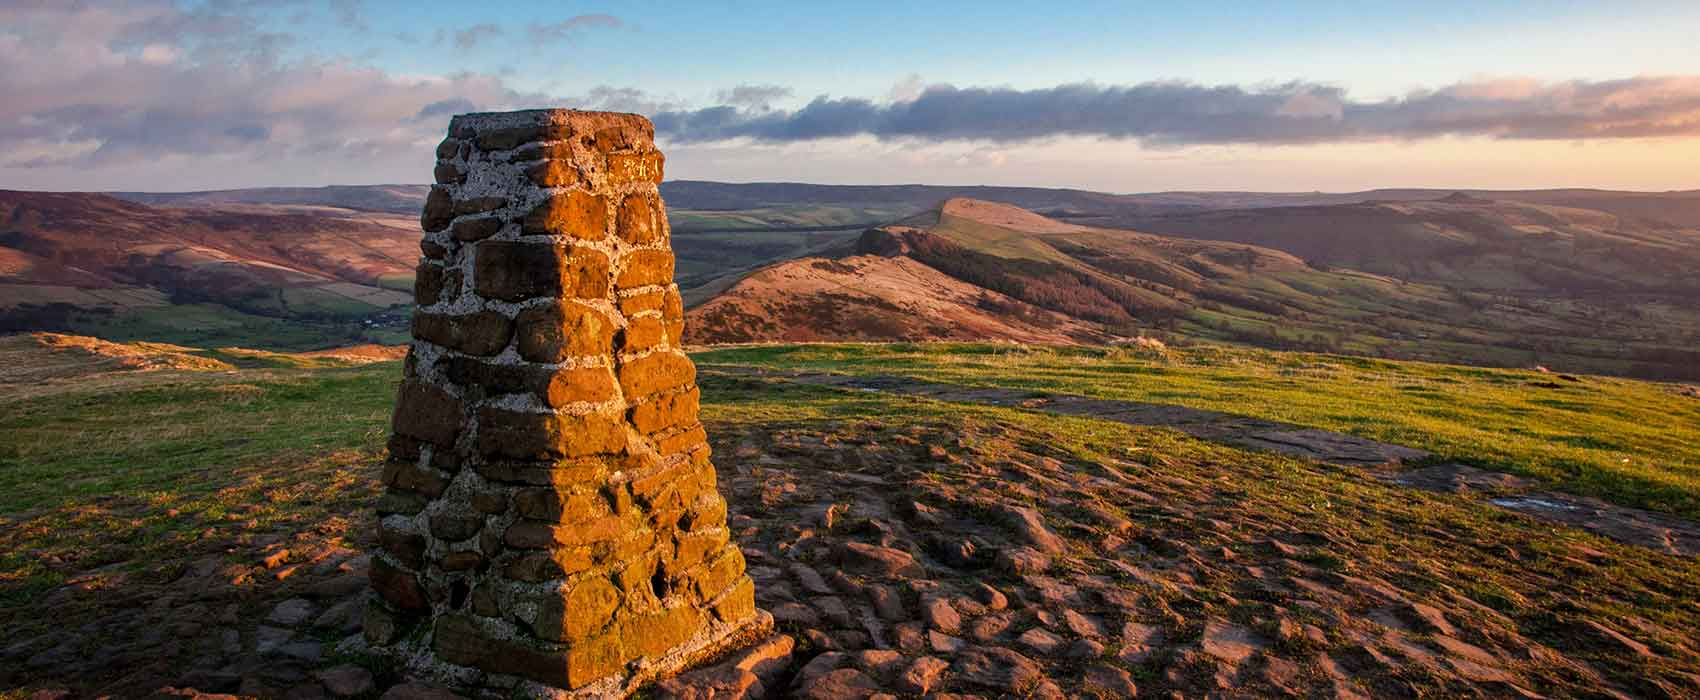 Trigg Point in the Peak District